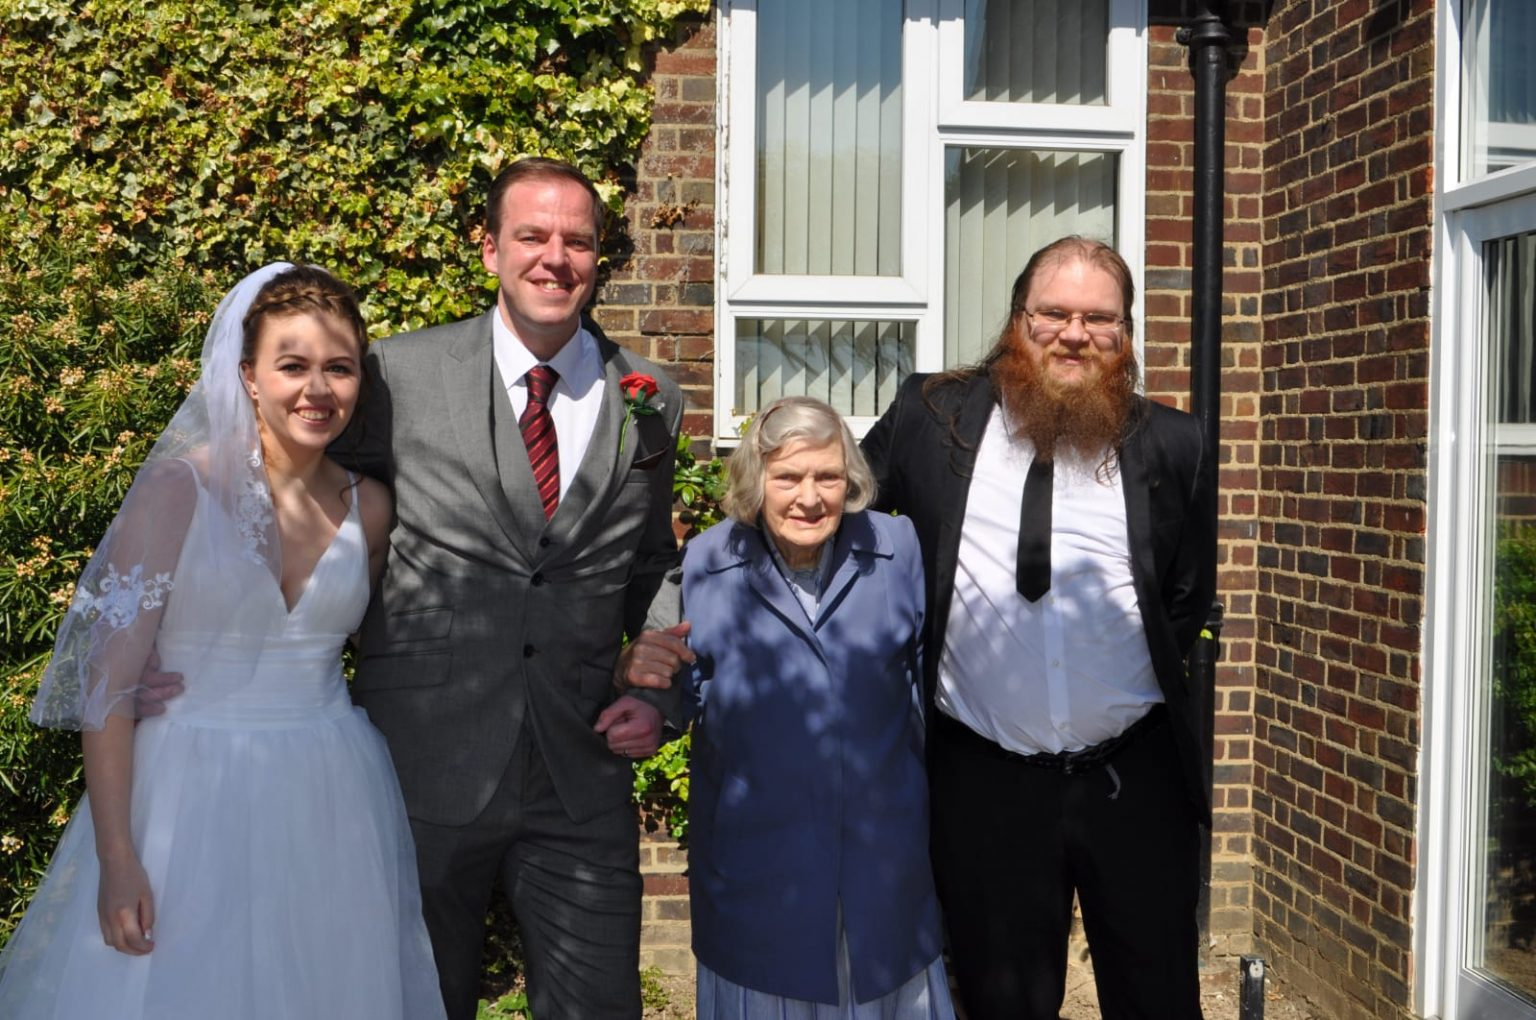 Bride and groom with two wedding guests.